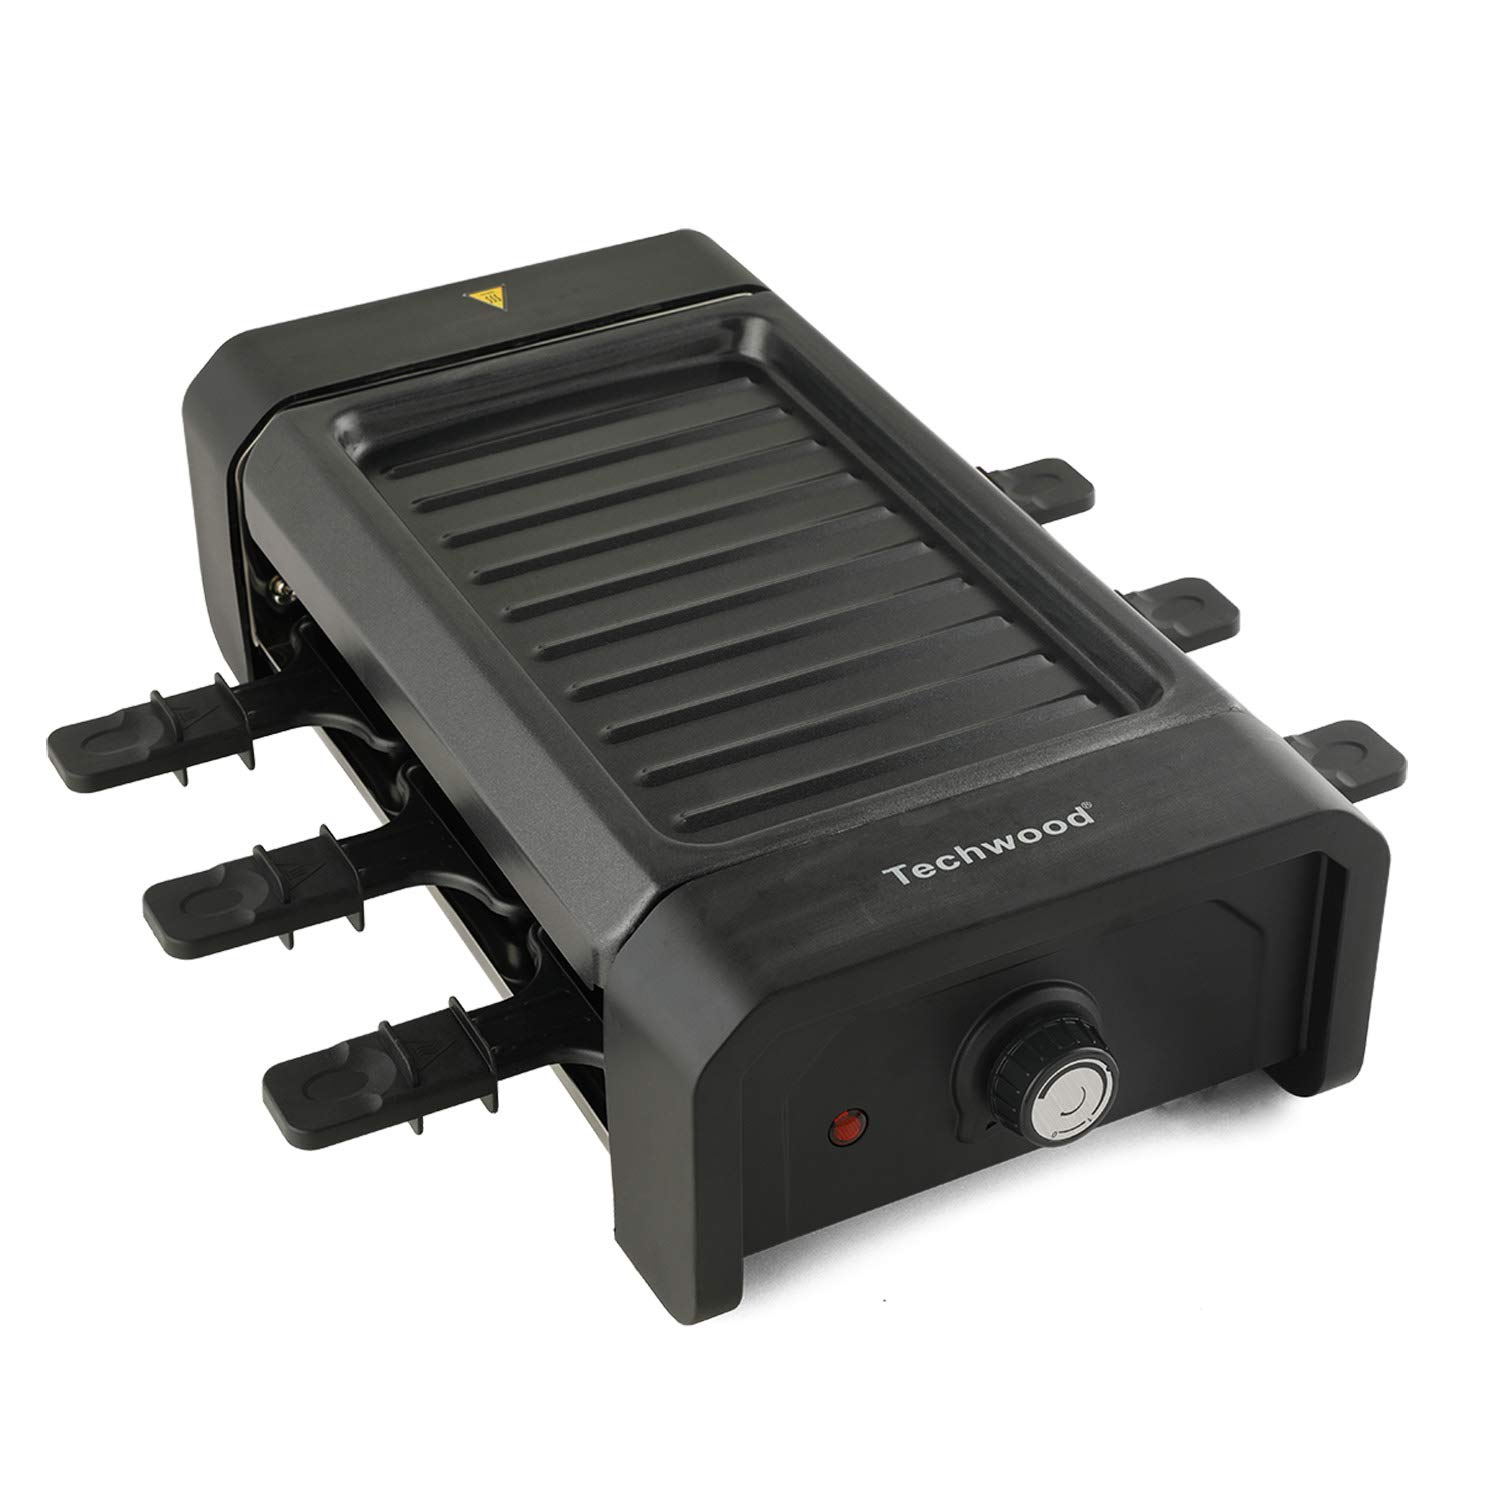 Techwood Raclette Grill, Electric Grill for 6 Person, 900W Table-Top Grill